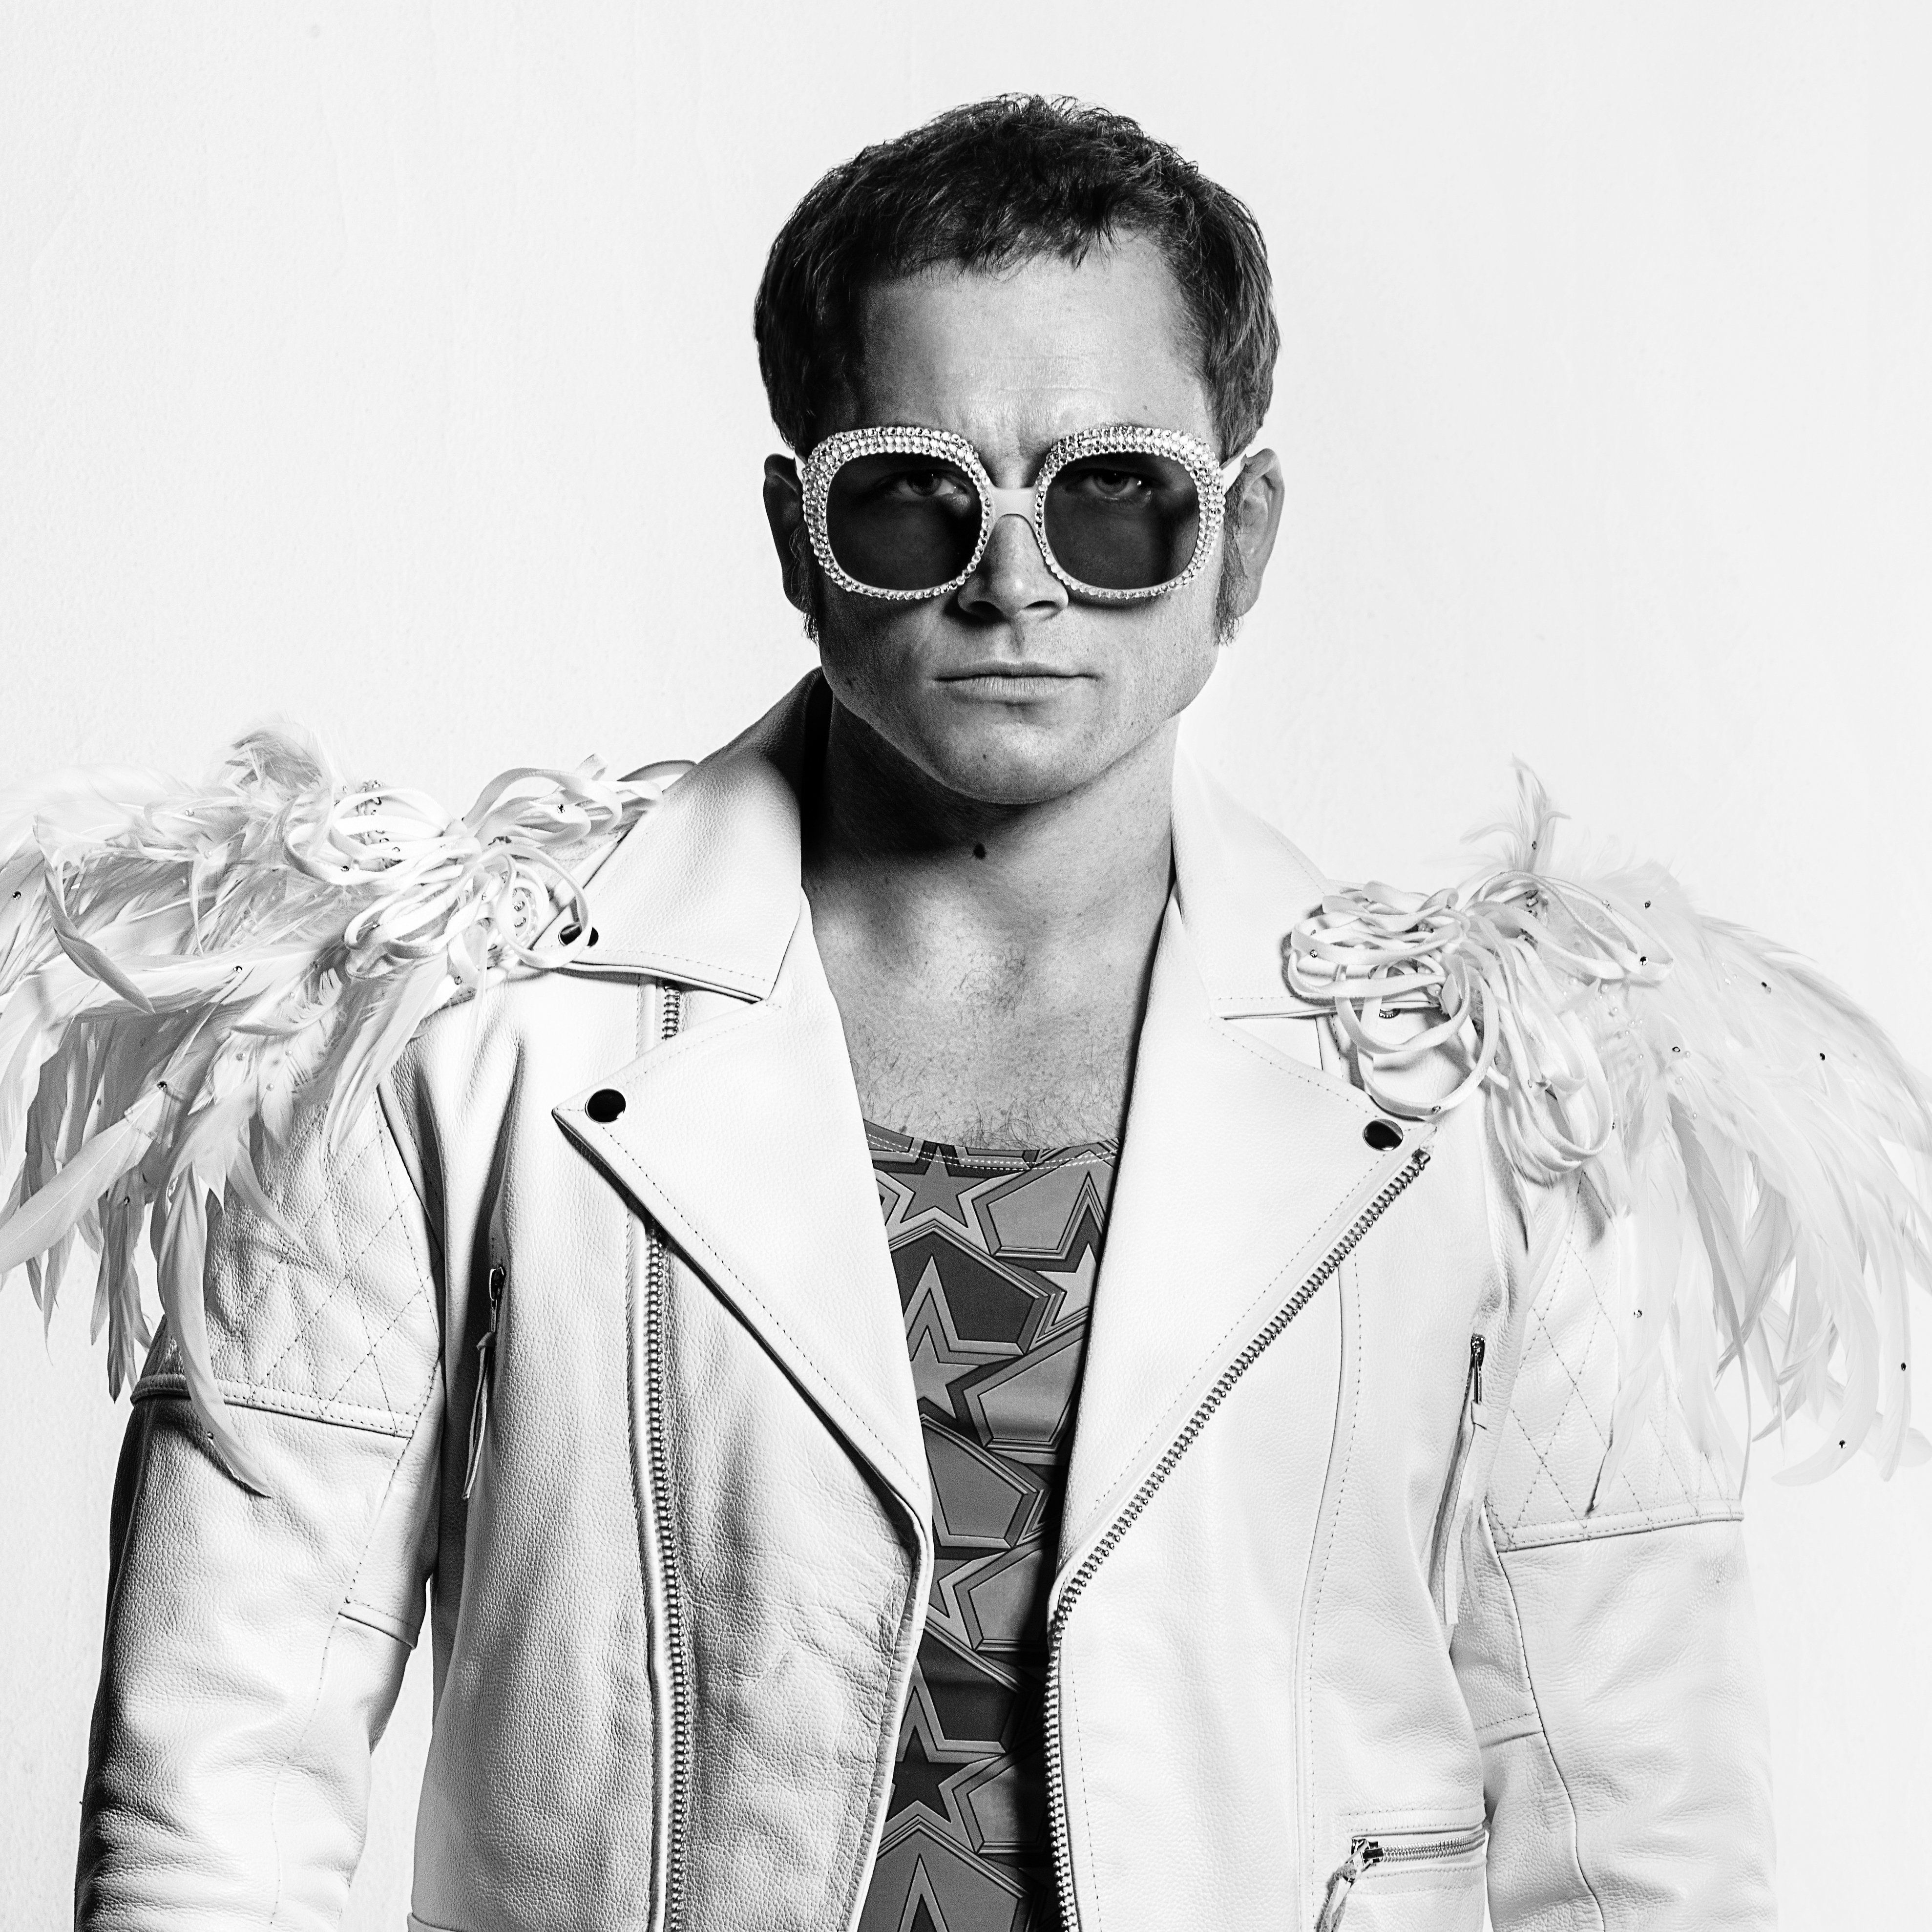 'Rocketman' Star Taron Egerton Sings An Elton John Classic In New Featurette - HuffPost